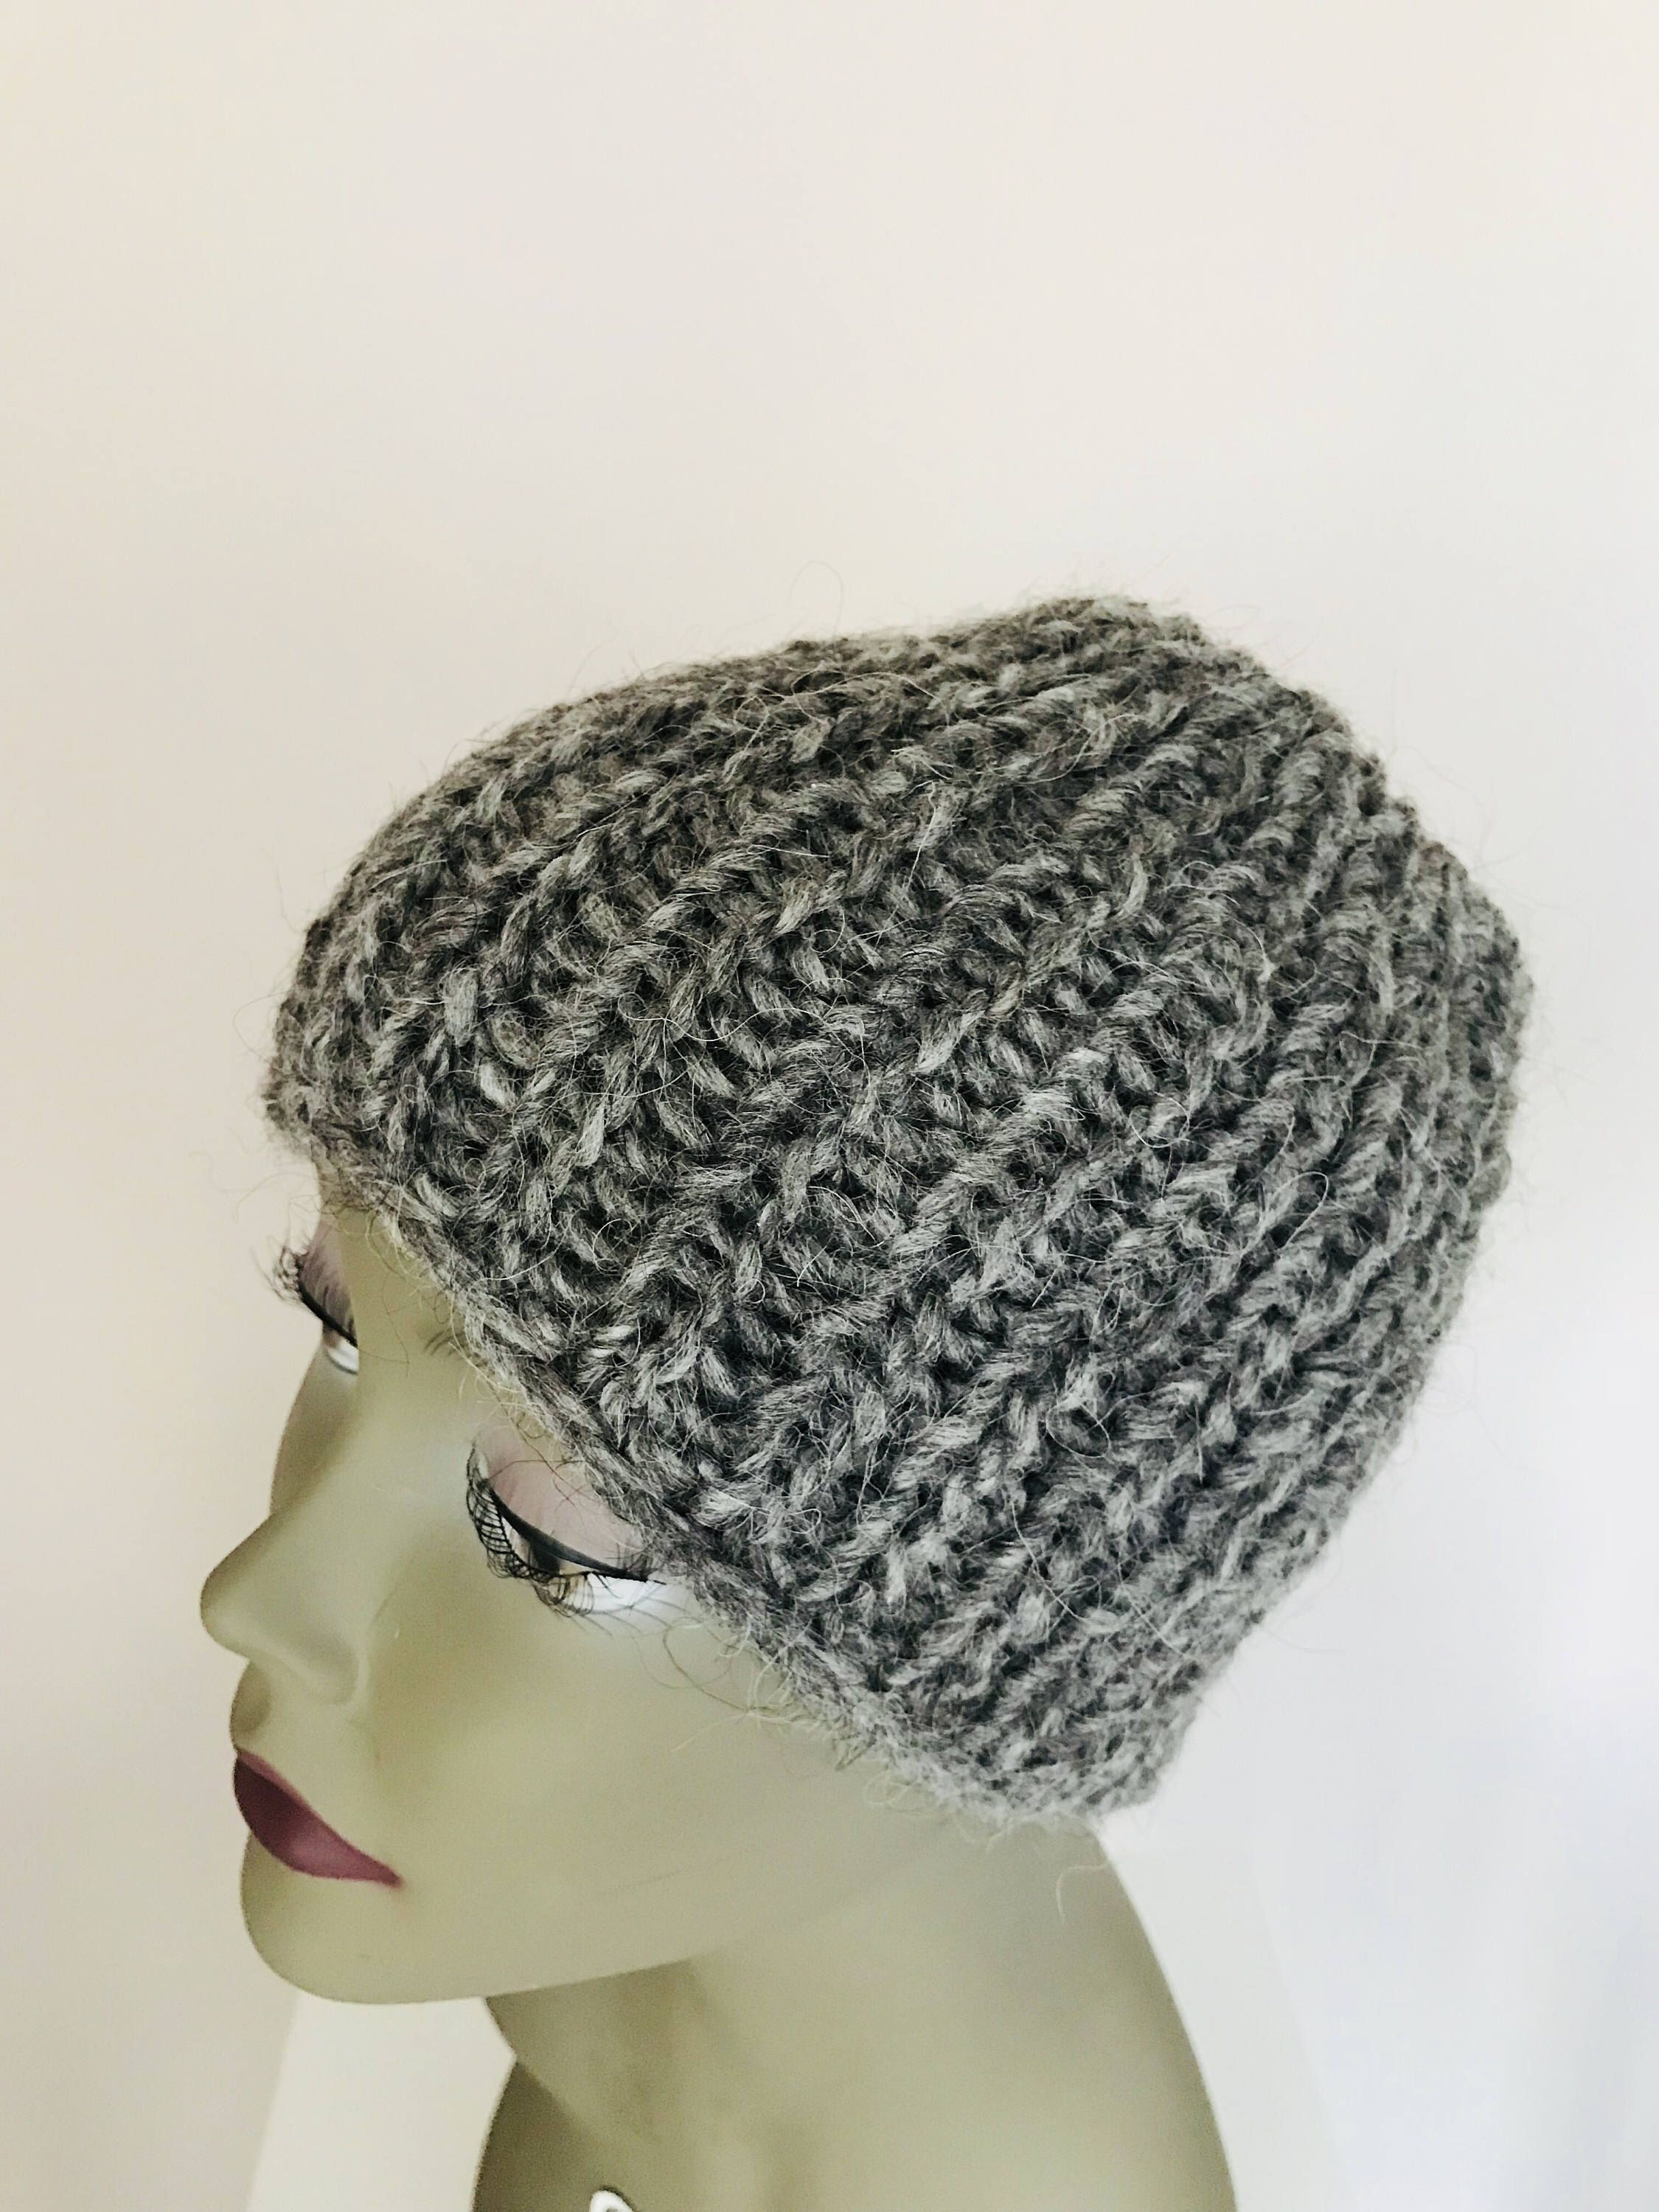 Excited to share this item from my  etsy shop  Messy Bun Hat - Ponytail Hat  - Hand Knit Headband - Grey Ponytail Hat - Wool Head Warmer - Ponytail  Beanie ... bfc251d1cbc